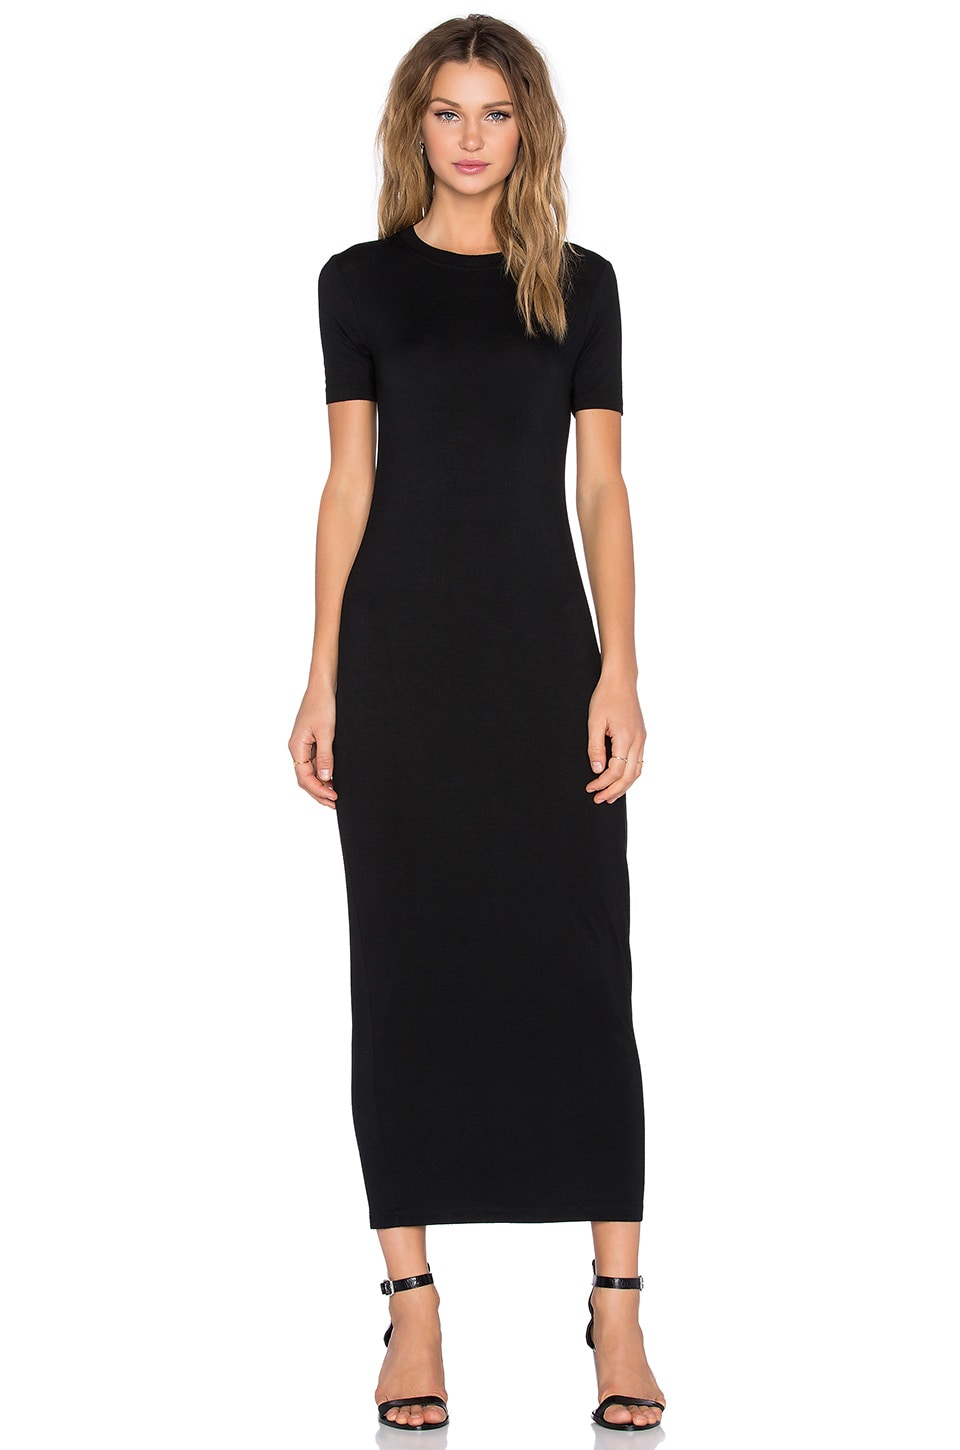 BLQ BASIQ Maxi T-Shirt Dress in Black | REVOLVE